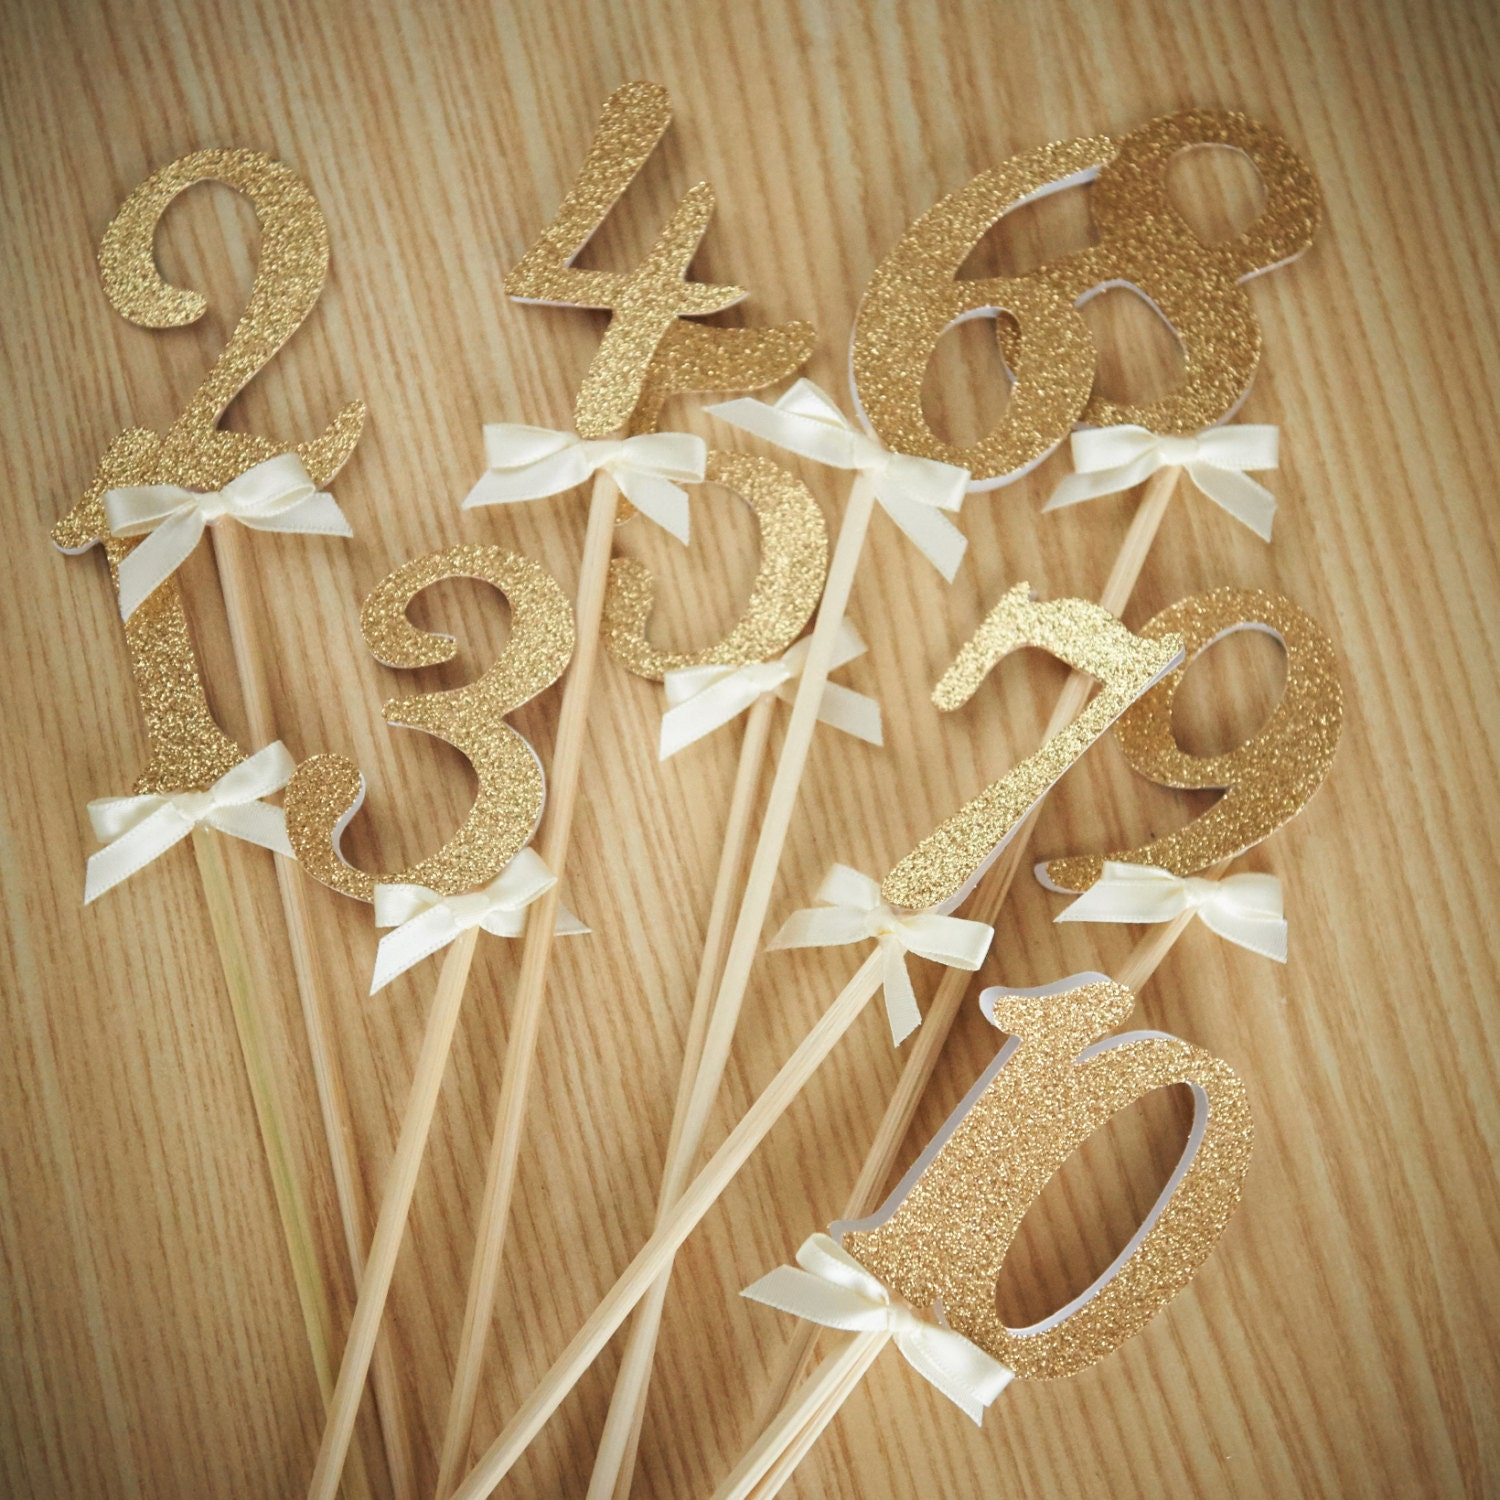 Table numbers on sticks handcrafted in 2 5 business days for Glitter numbers for centerpieces